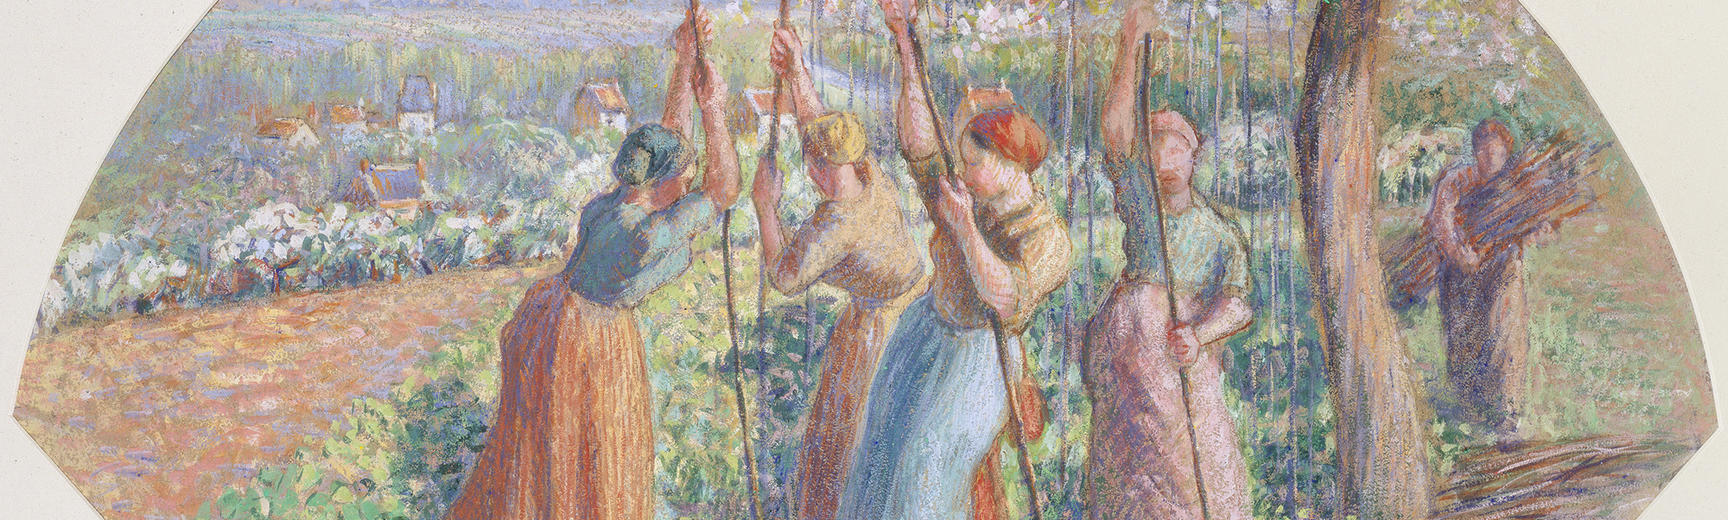 Detail of a painting by Camille Pissarro of women staking peas under a tree